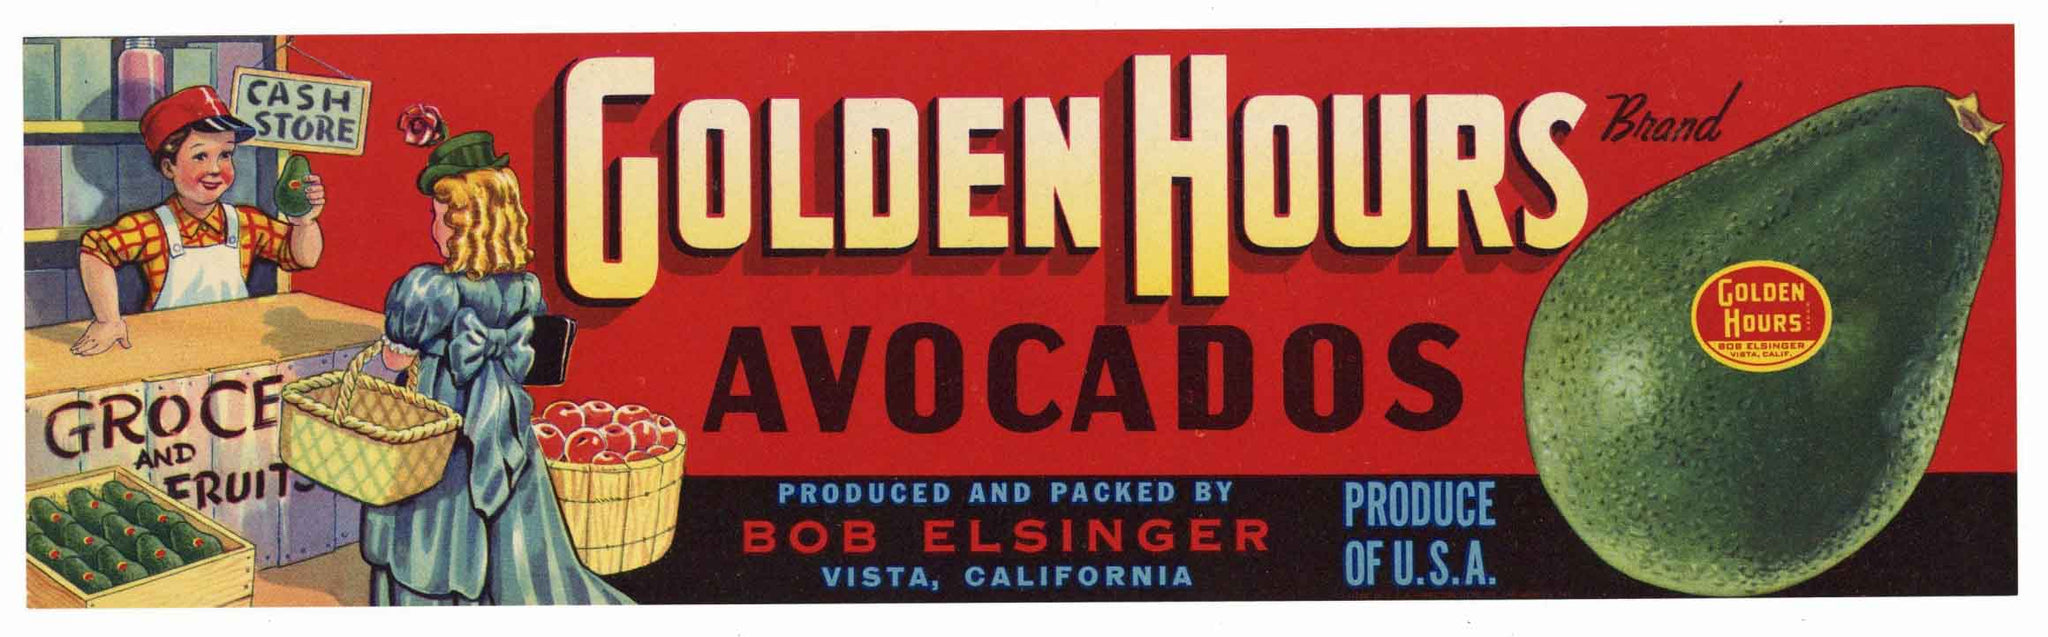 Golden Hours Brand Vintage Vista Avocado Crate Label